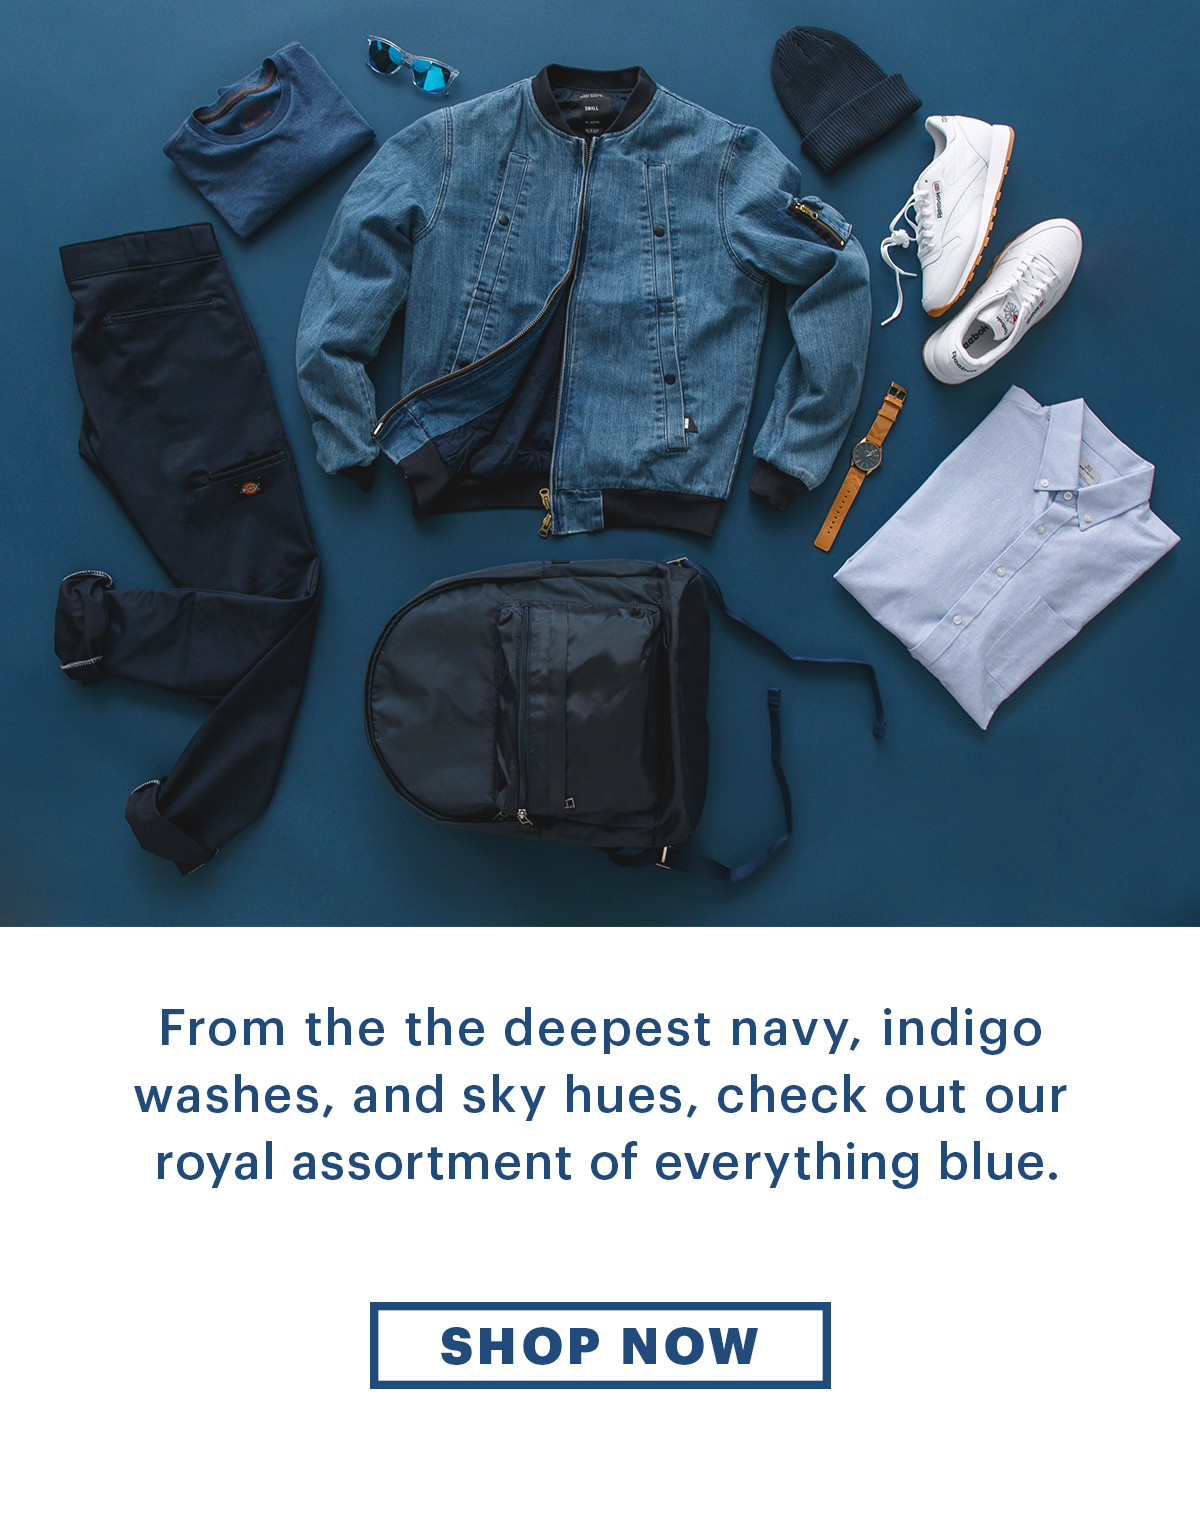 From the deepest navy, indigo washes, and sky hues, check out our royal assortment of everything blue. | Shop Now